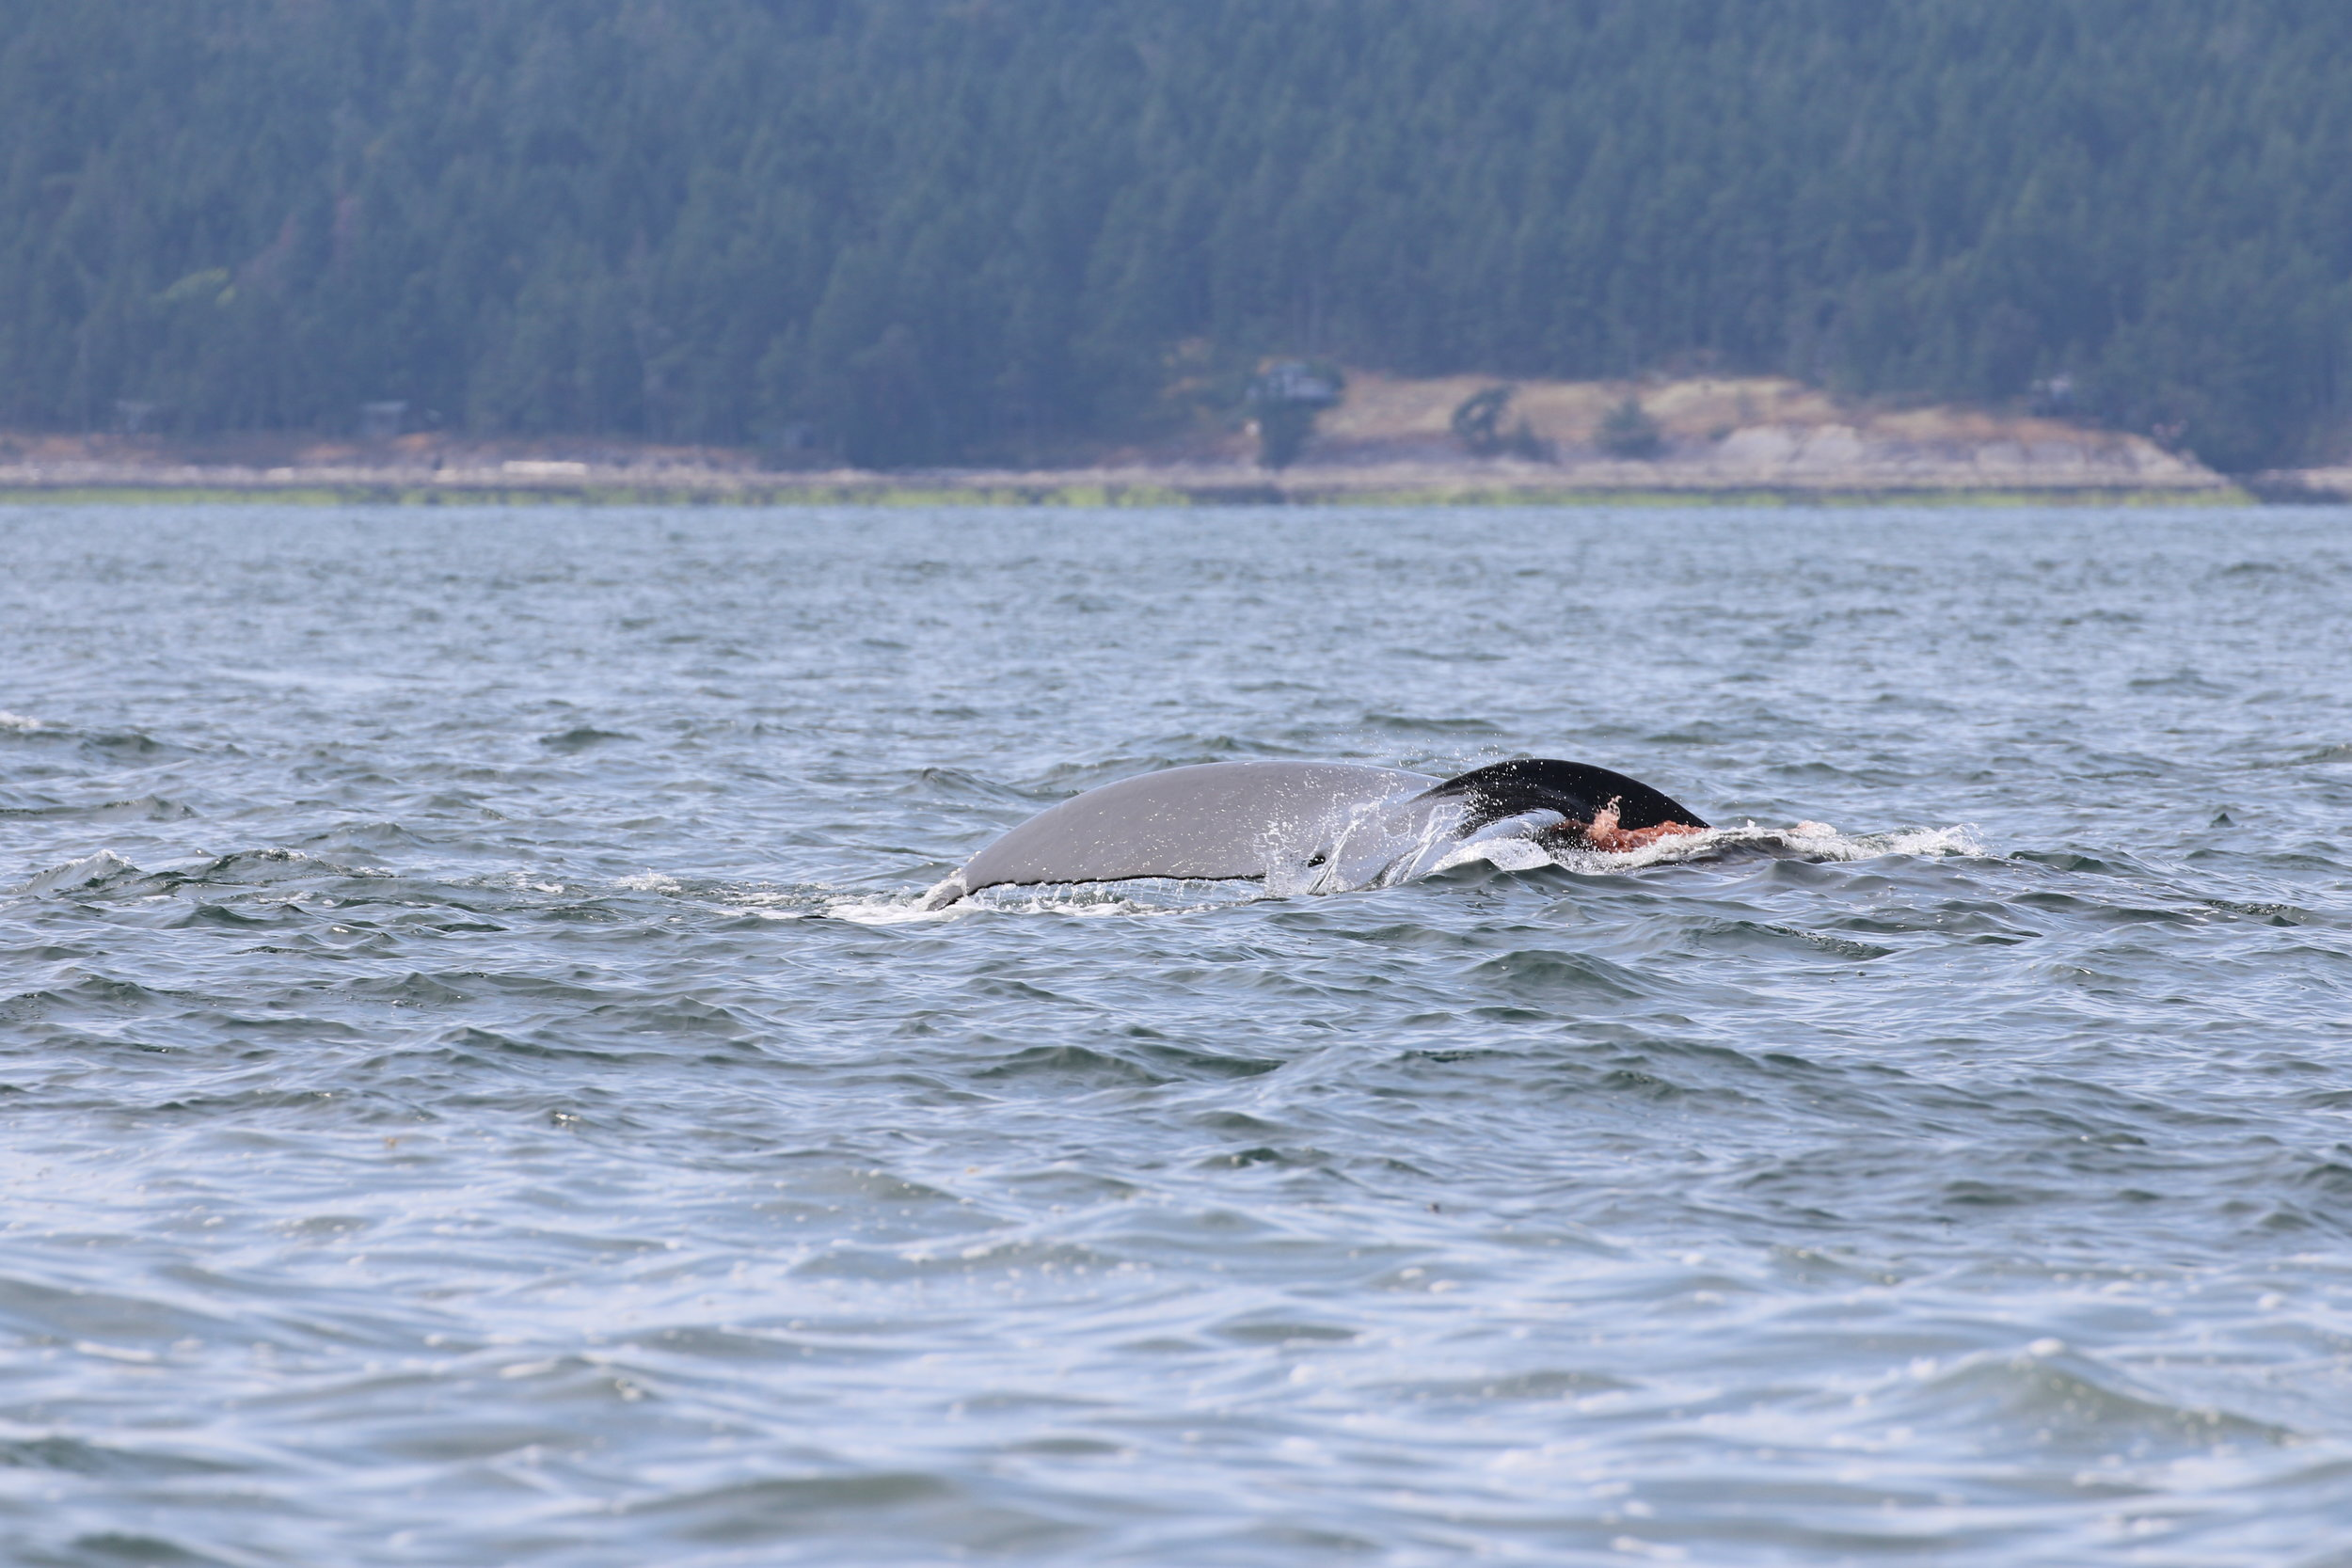 Pooping humpback! Photo by Natalie Reichenbacher (10:30am).